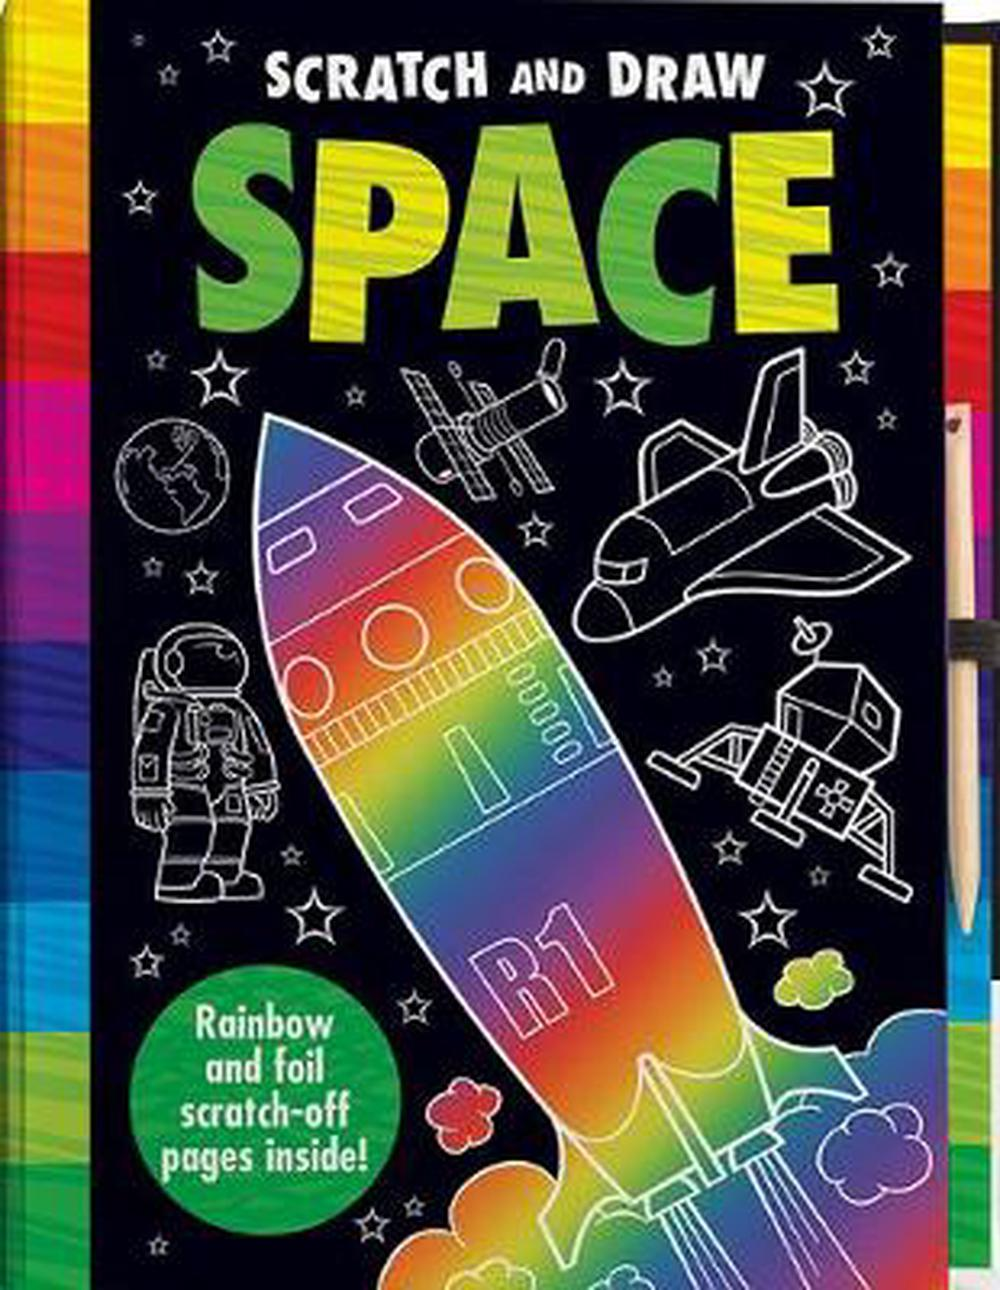 Scratch and Draw Space by Joshua George Hardcover Book Free Shipping!